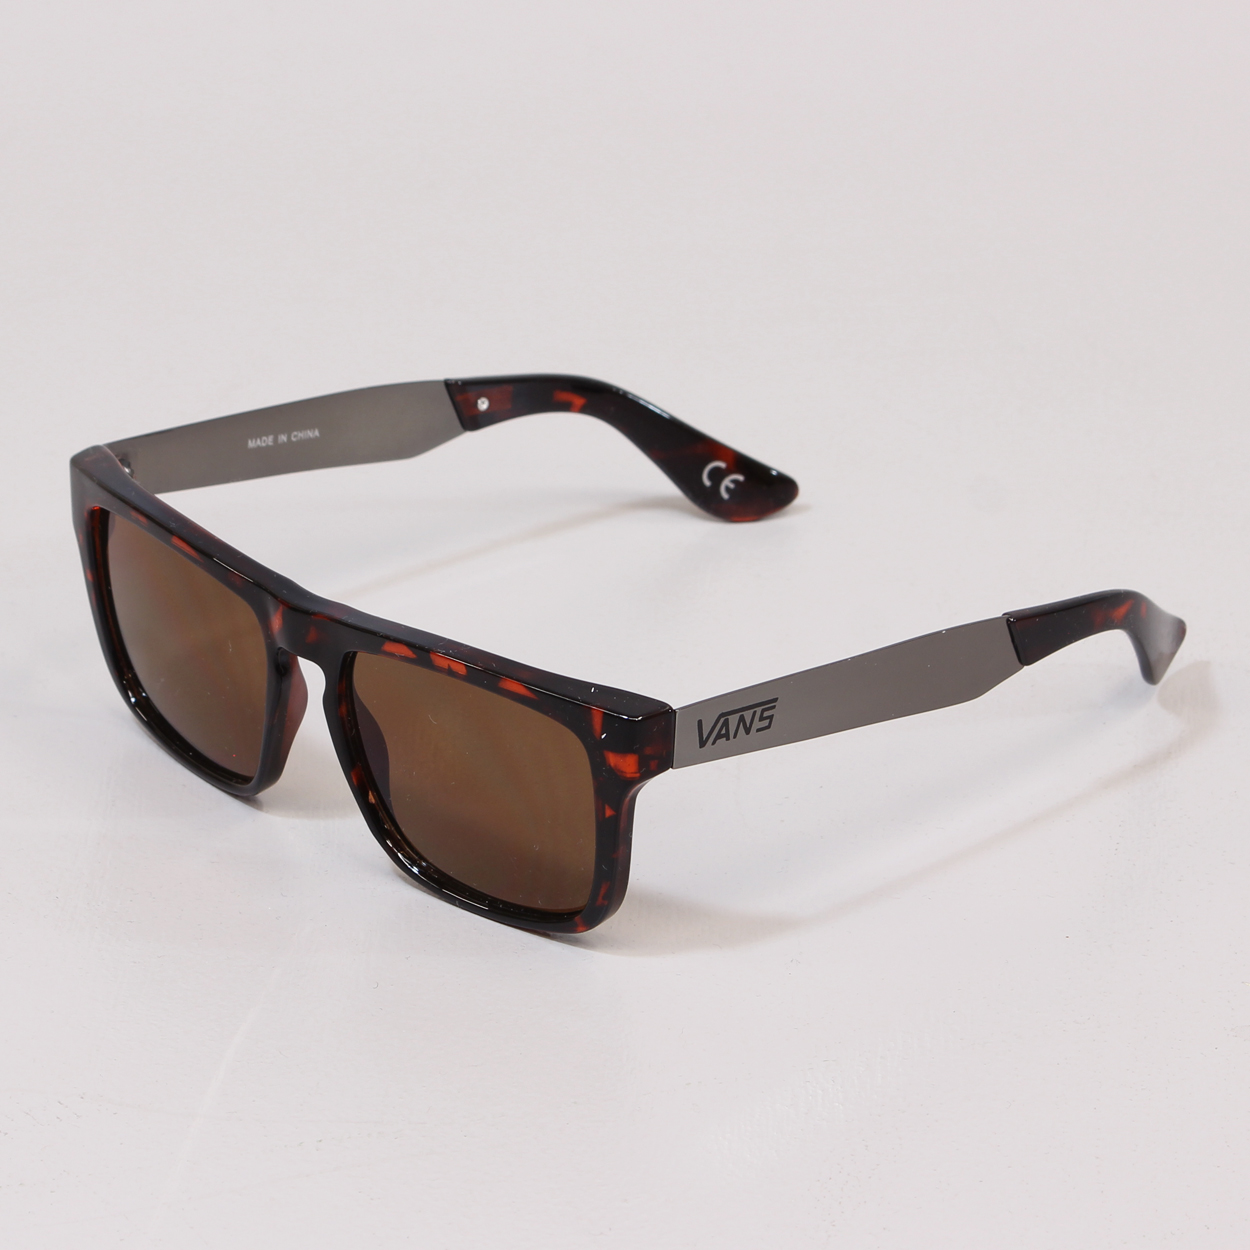 d42777cba0 Vans Squared Off Sunglasses Tortoise Brushed Silver Metal Shades £15.00